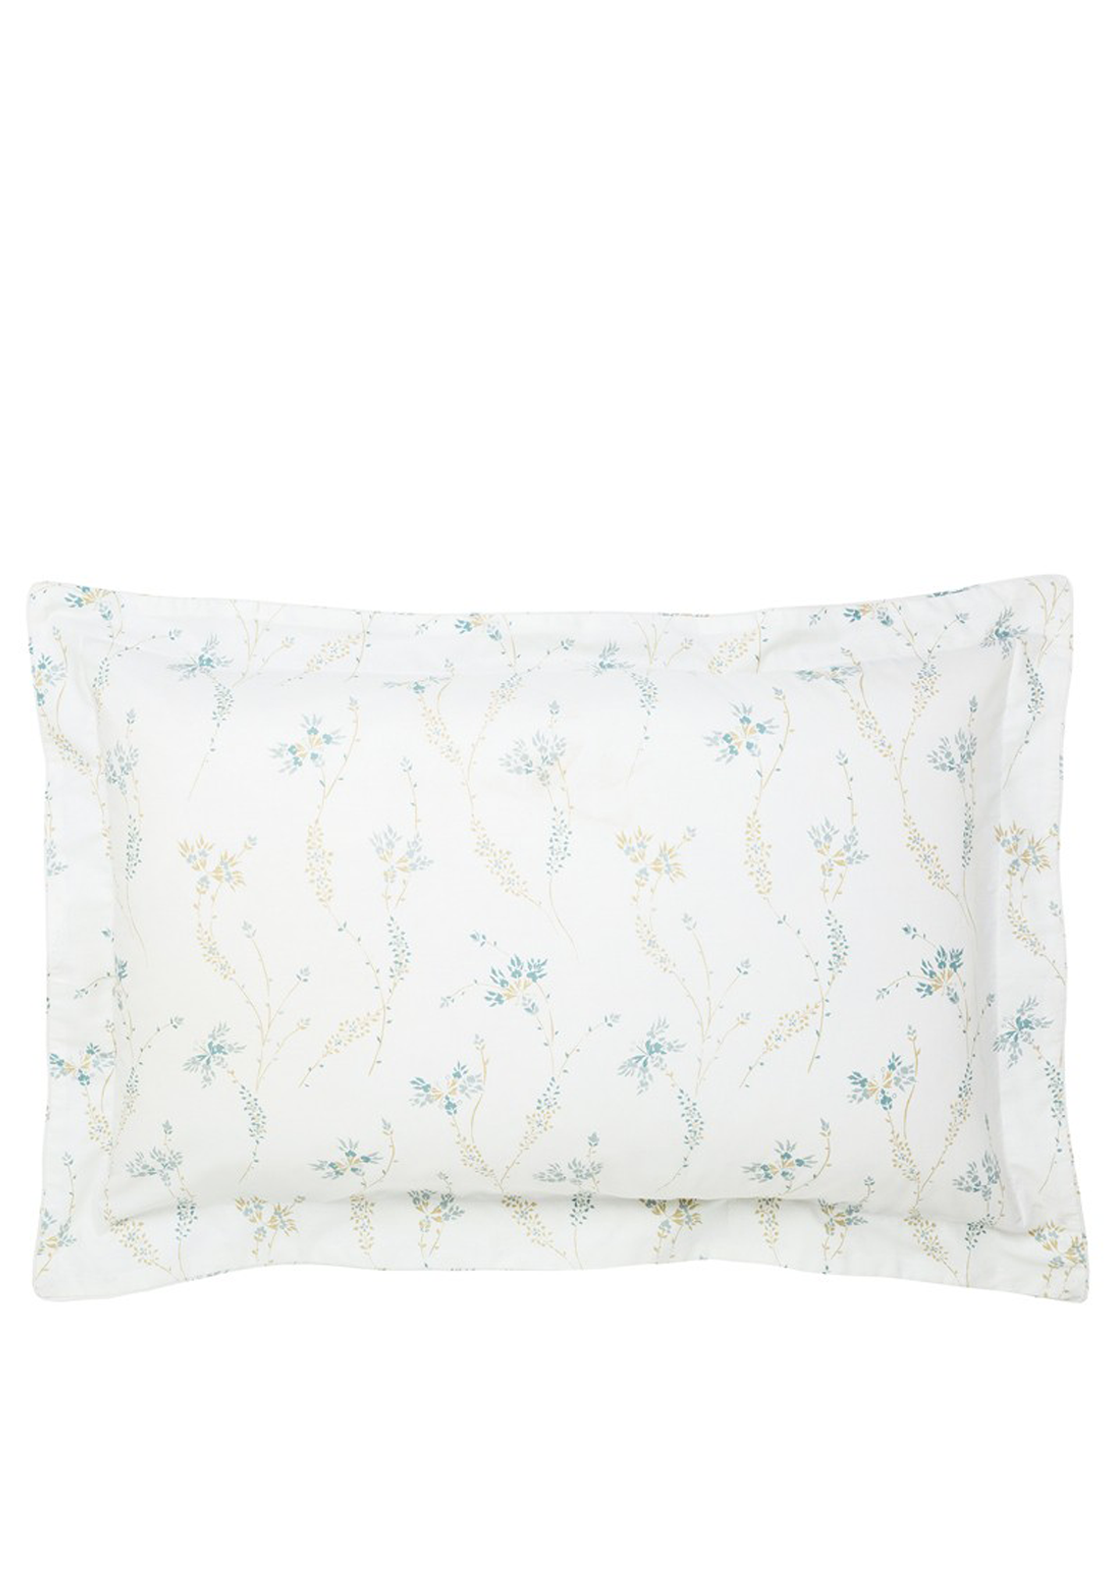 Fable Kassia Oxford Pillowcase, Duck Egg